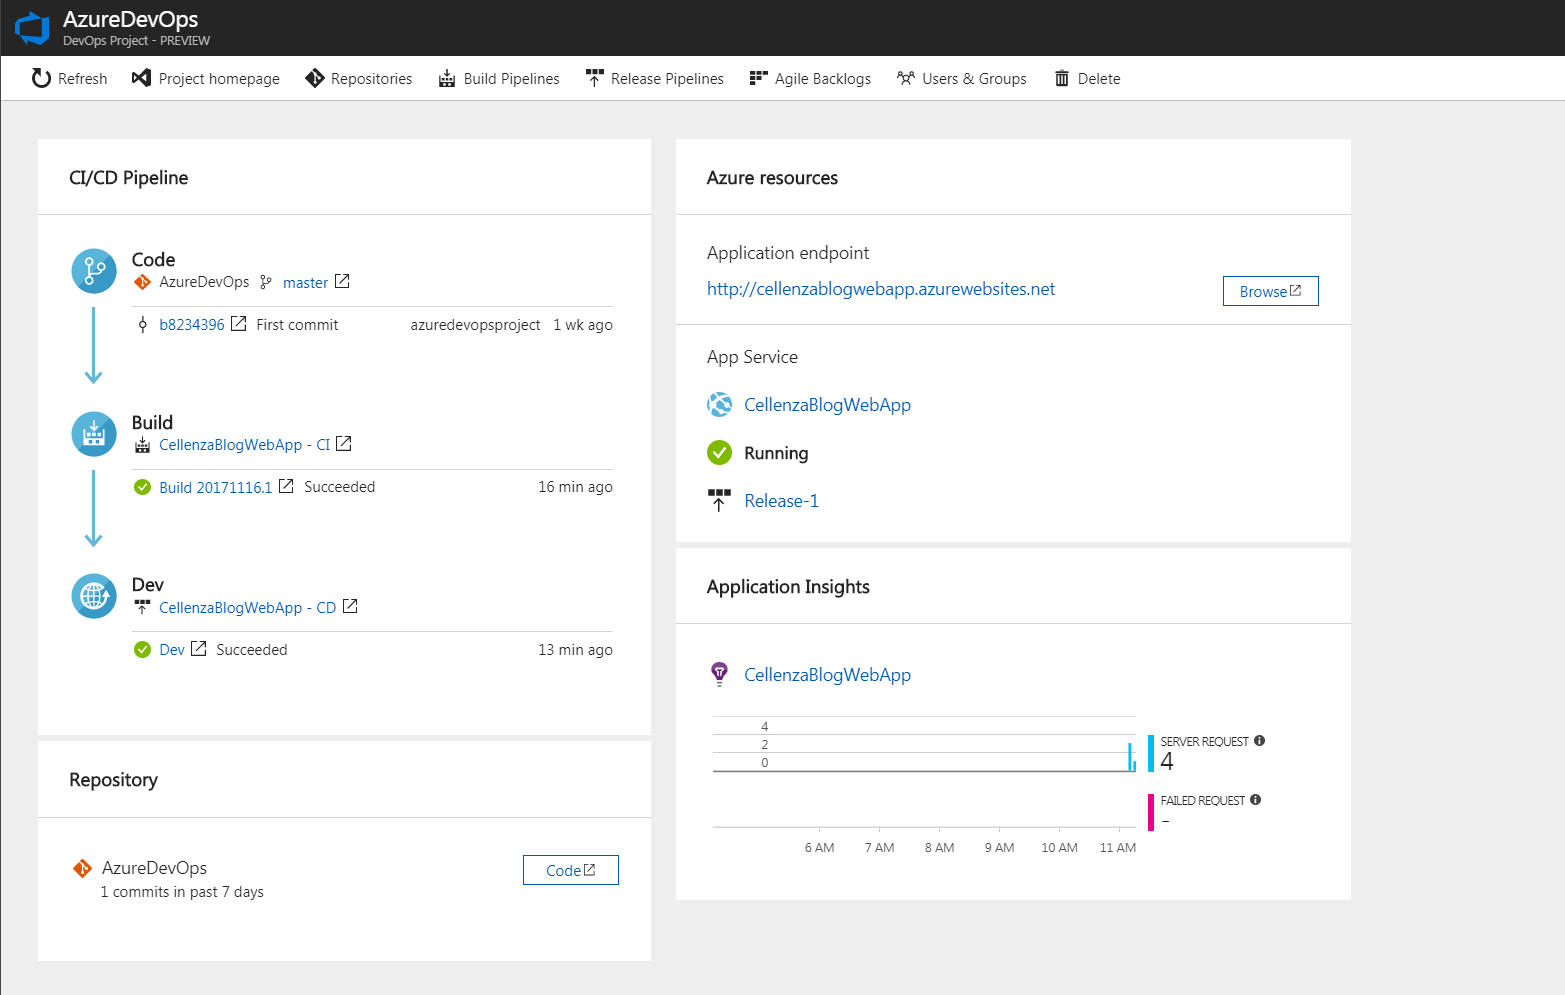 Azure DevOps Project